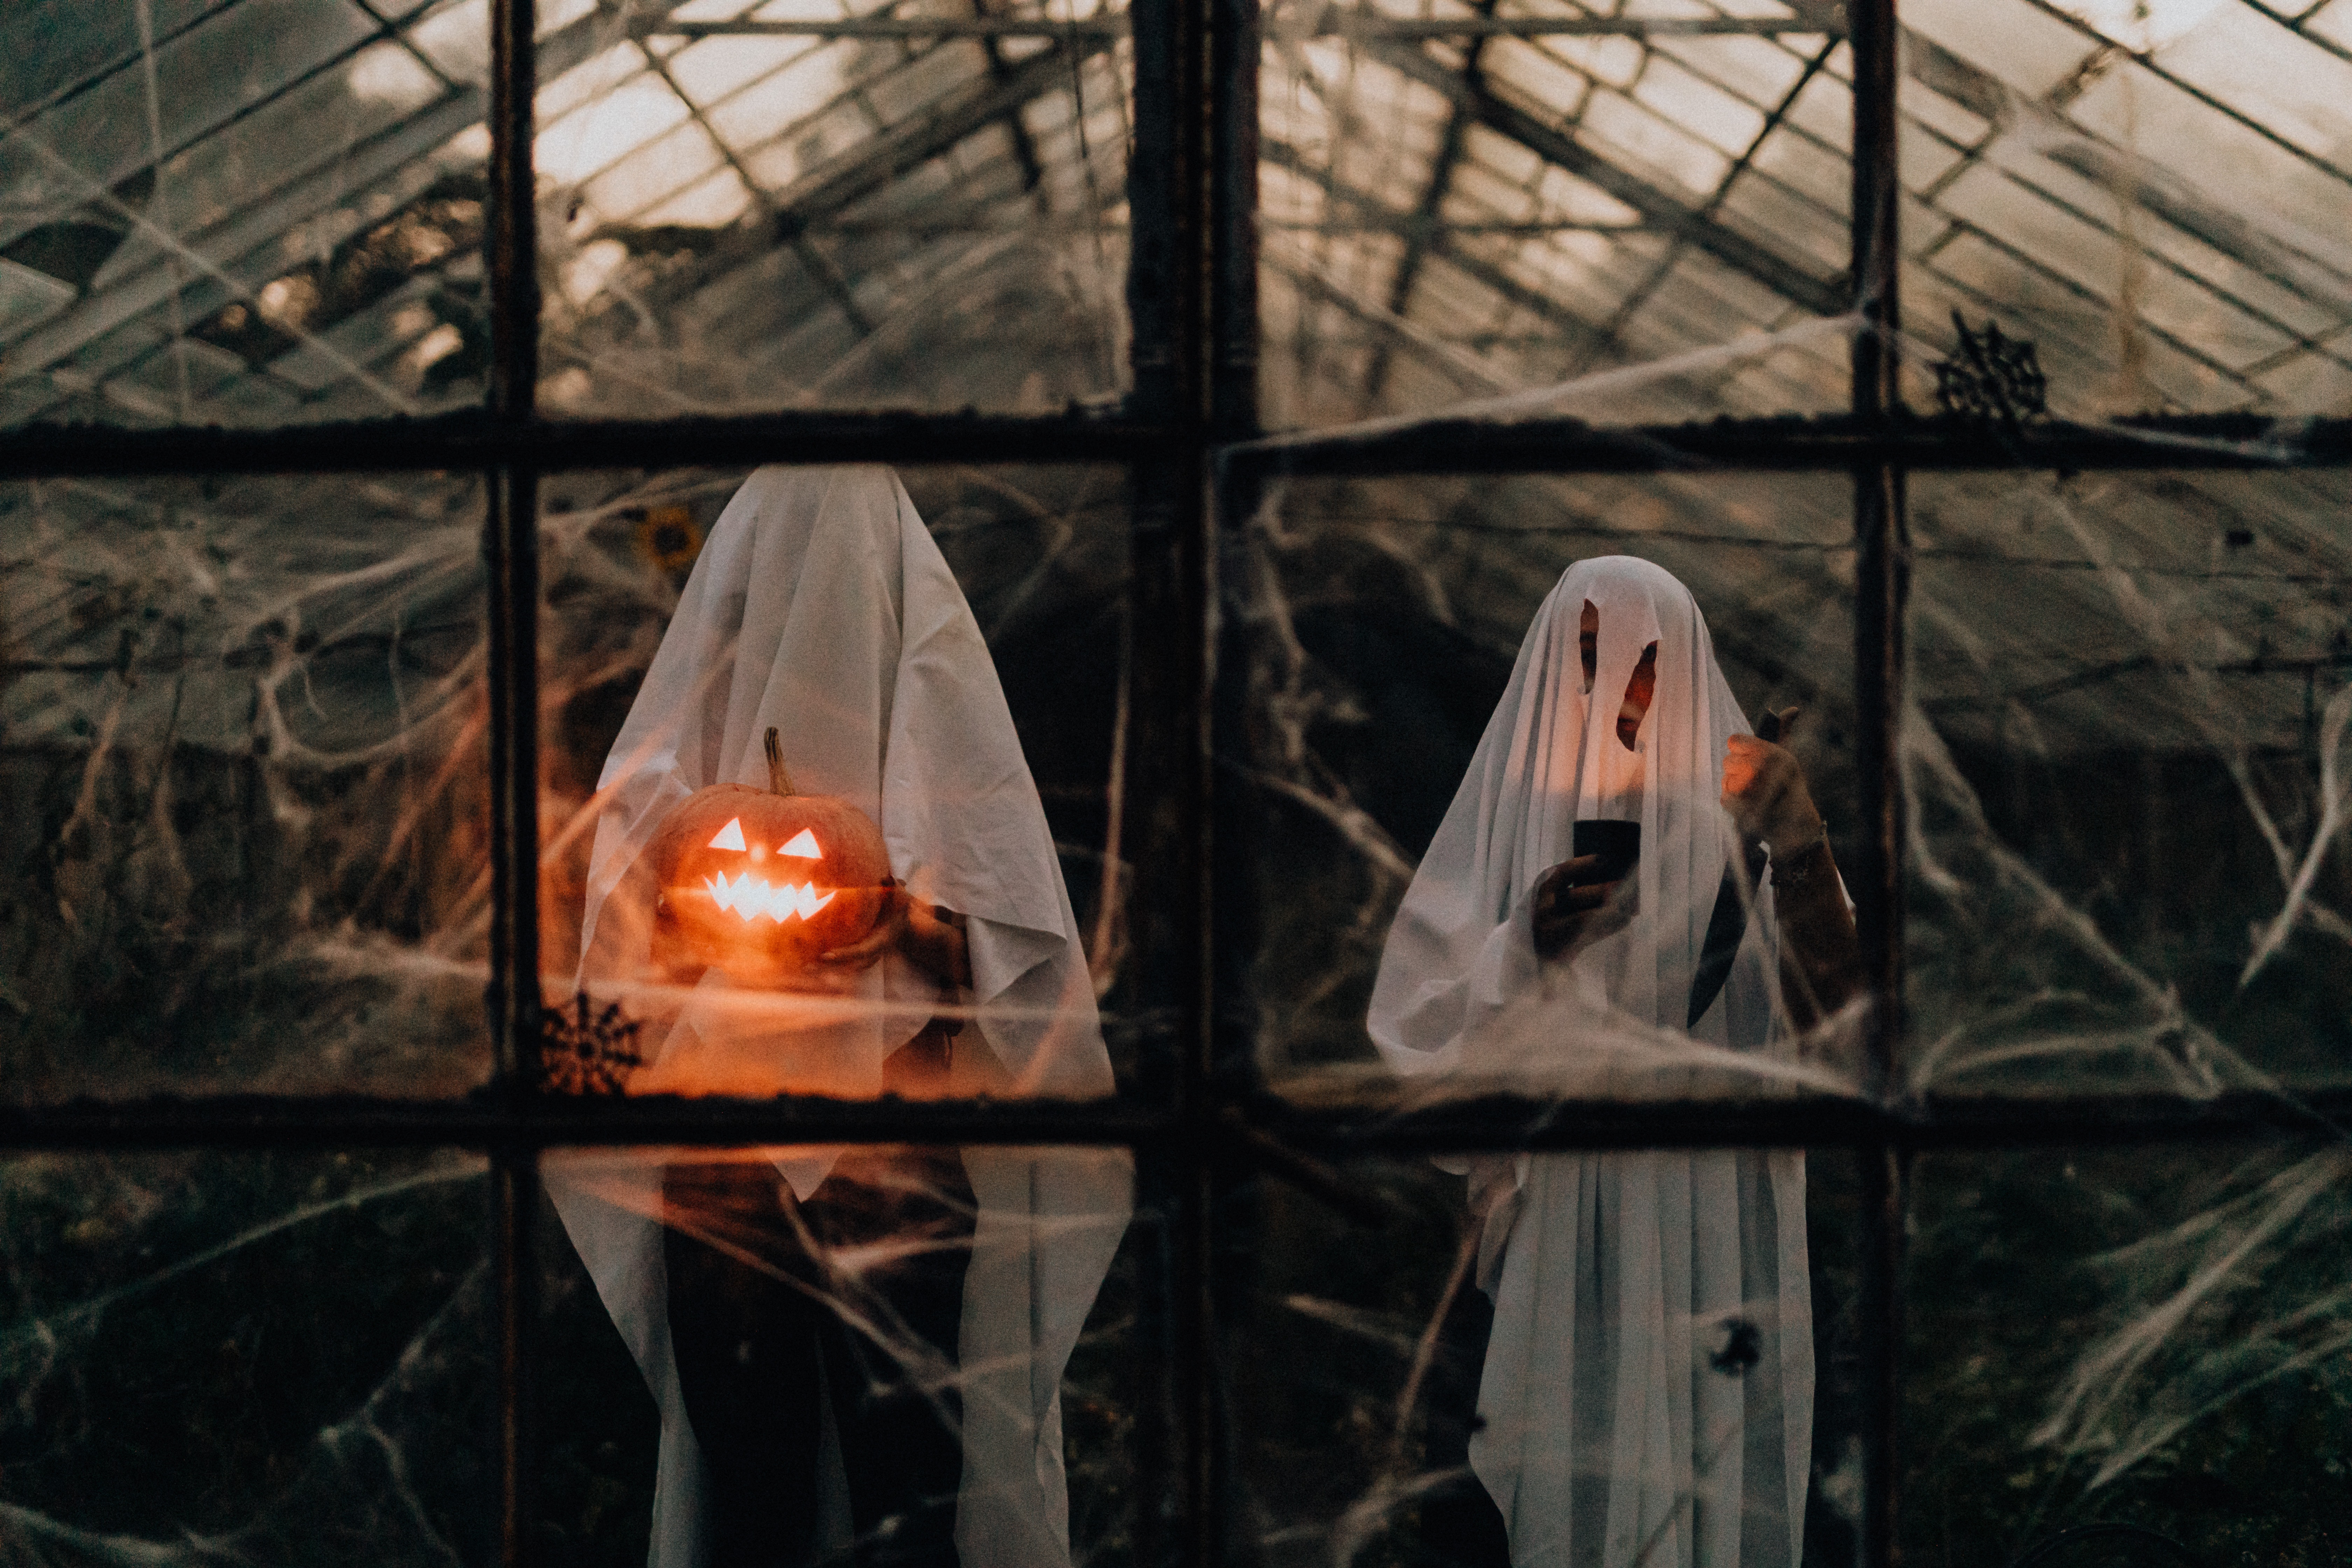 Ghosts in a greenhouse